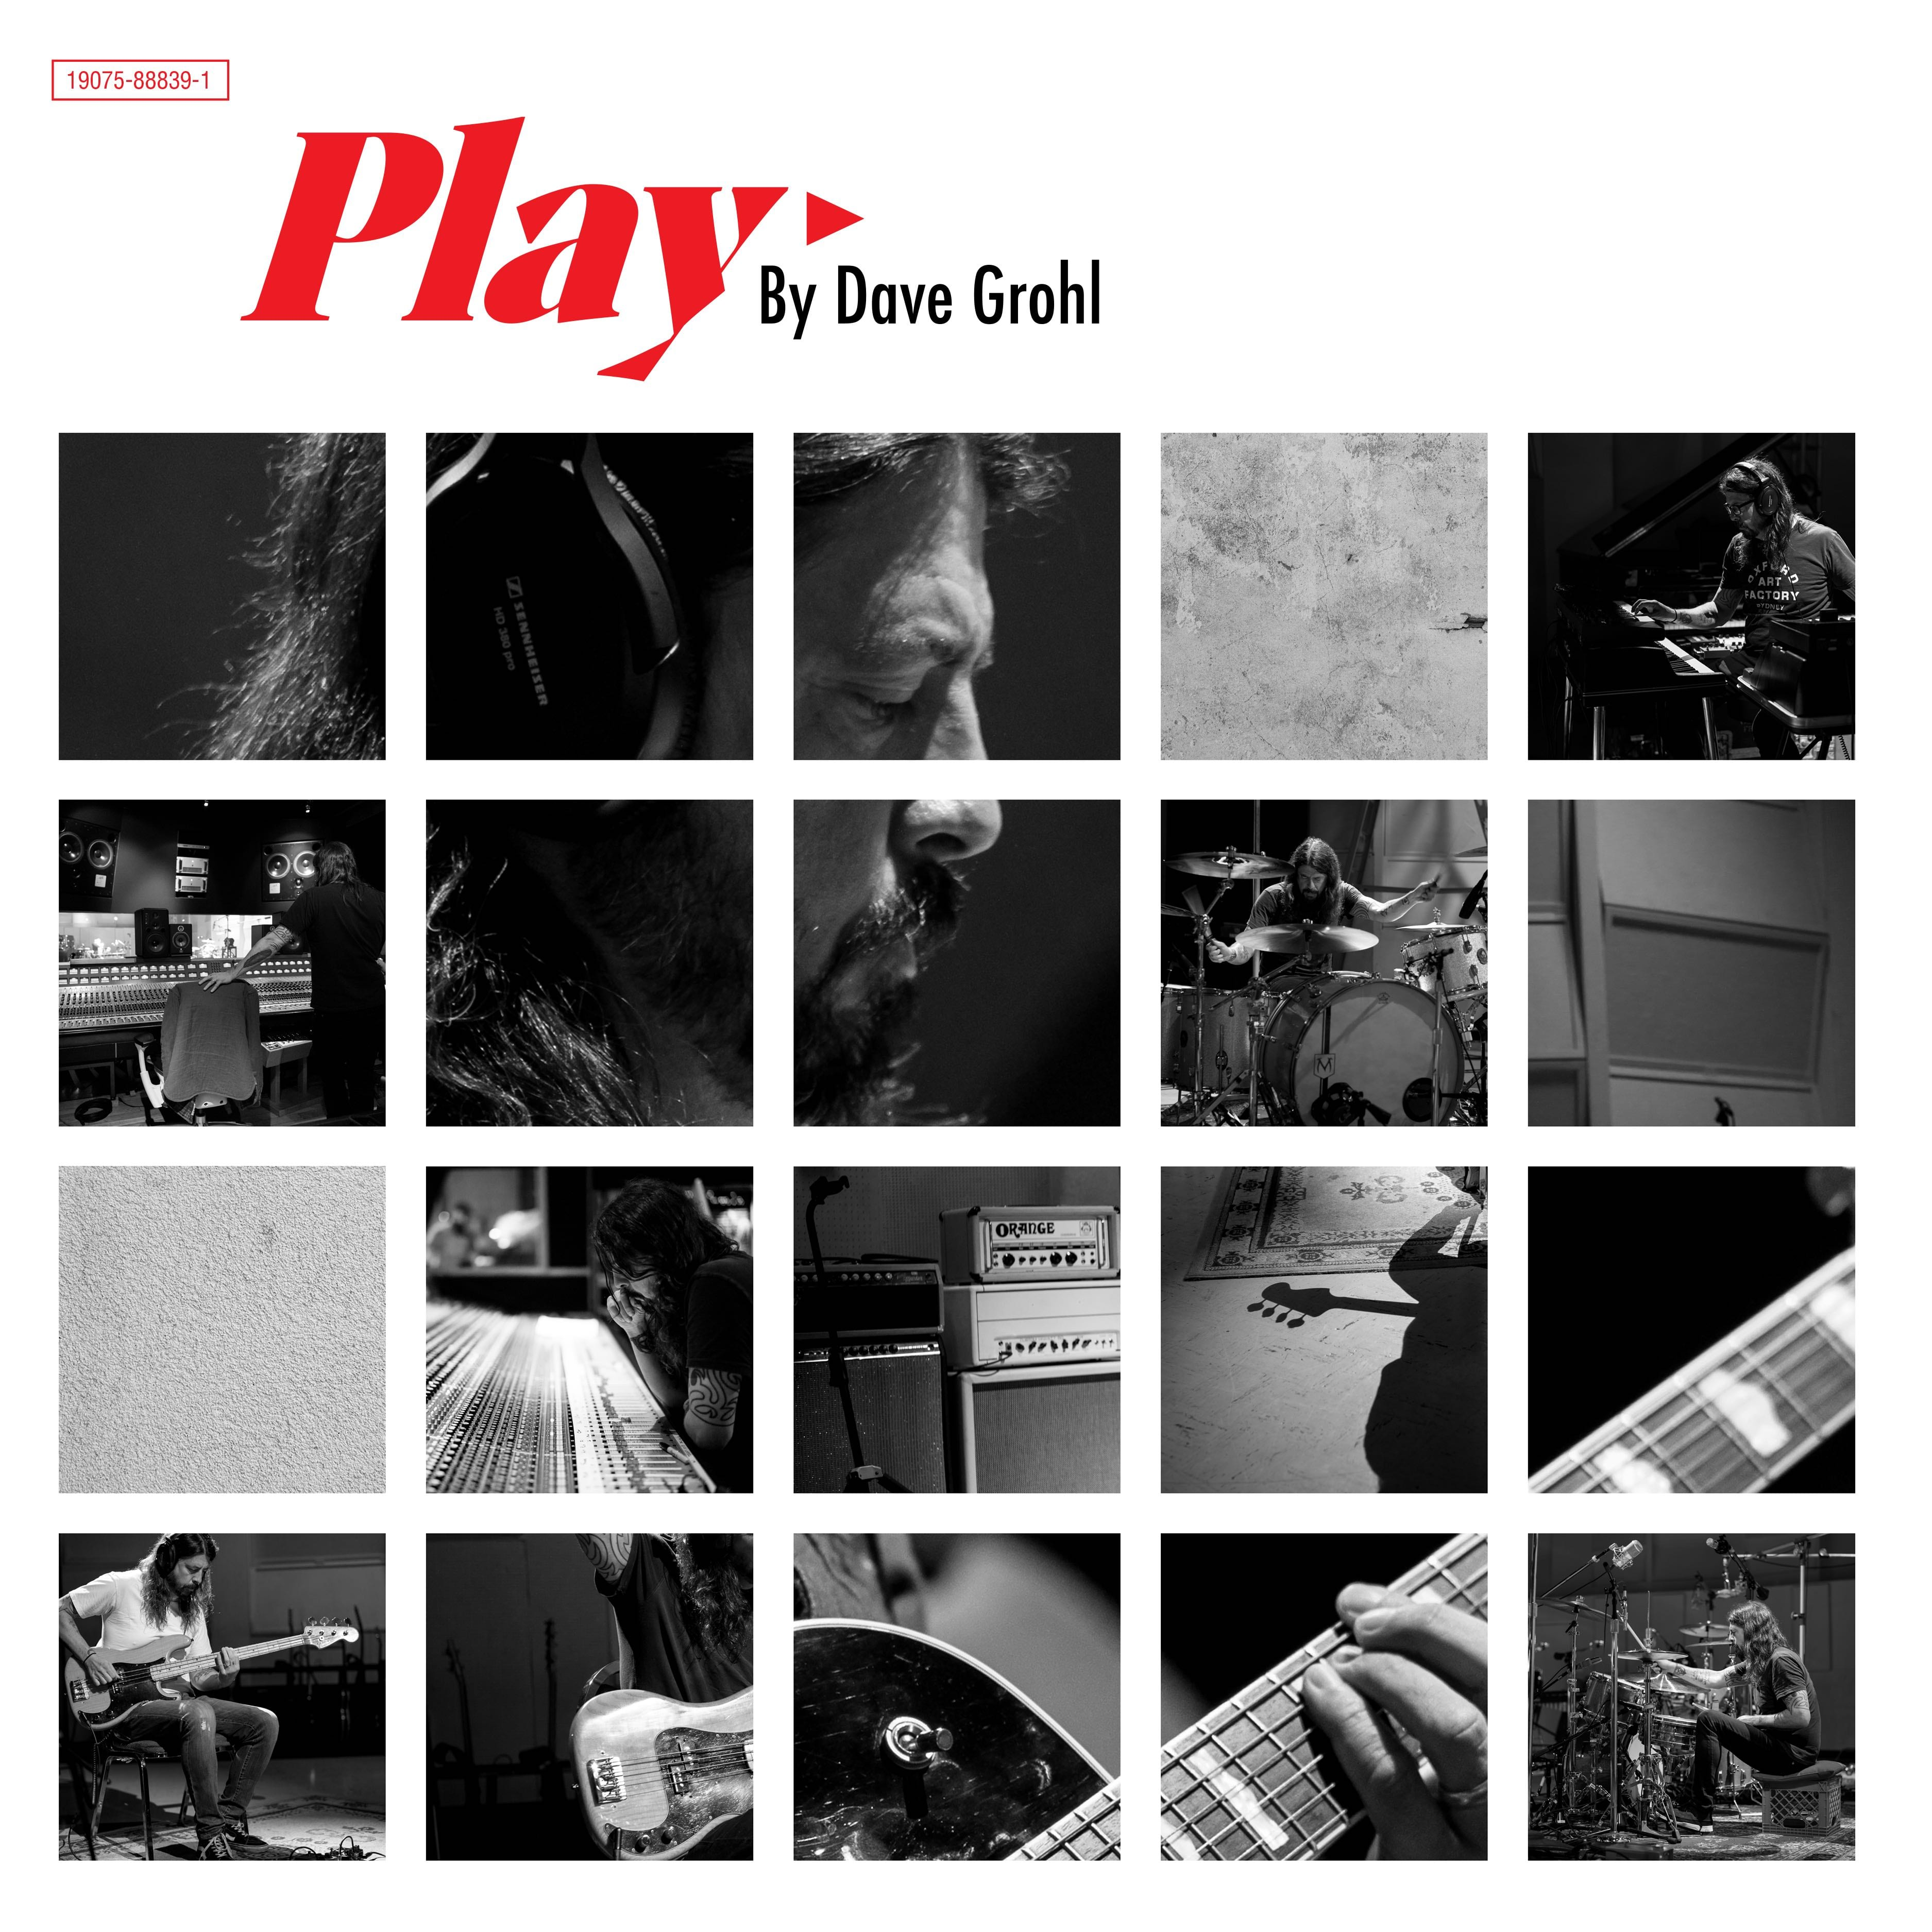 Dave Grohl - Play cover